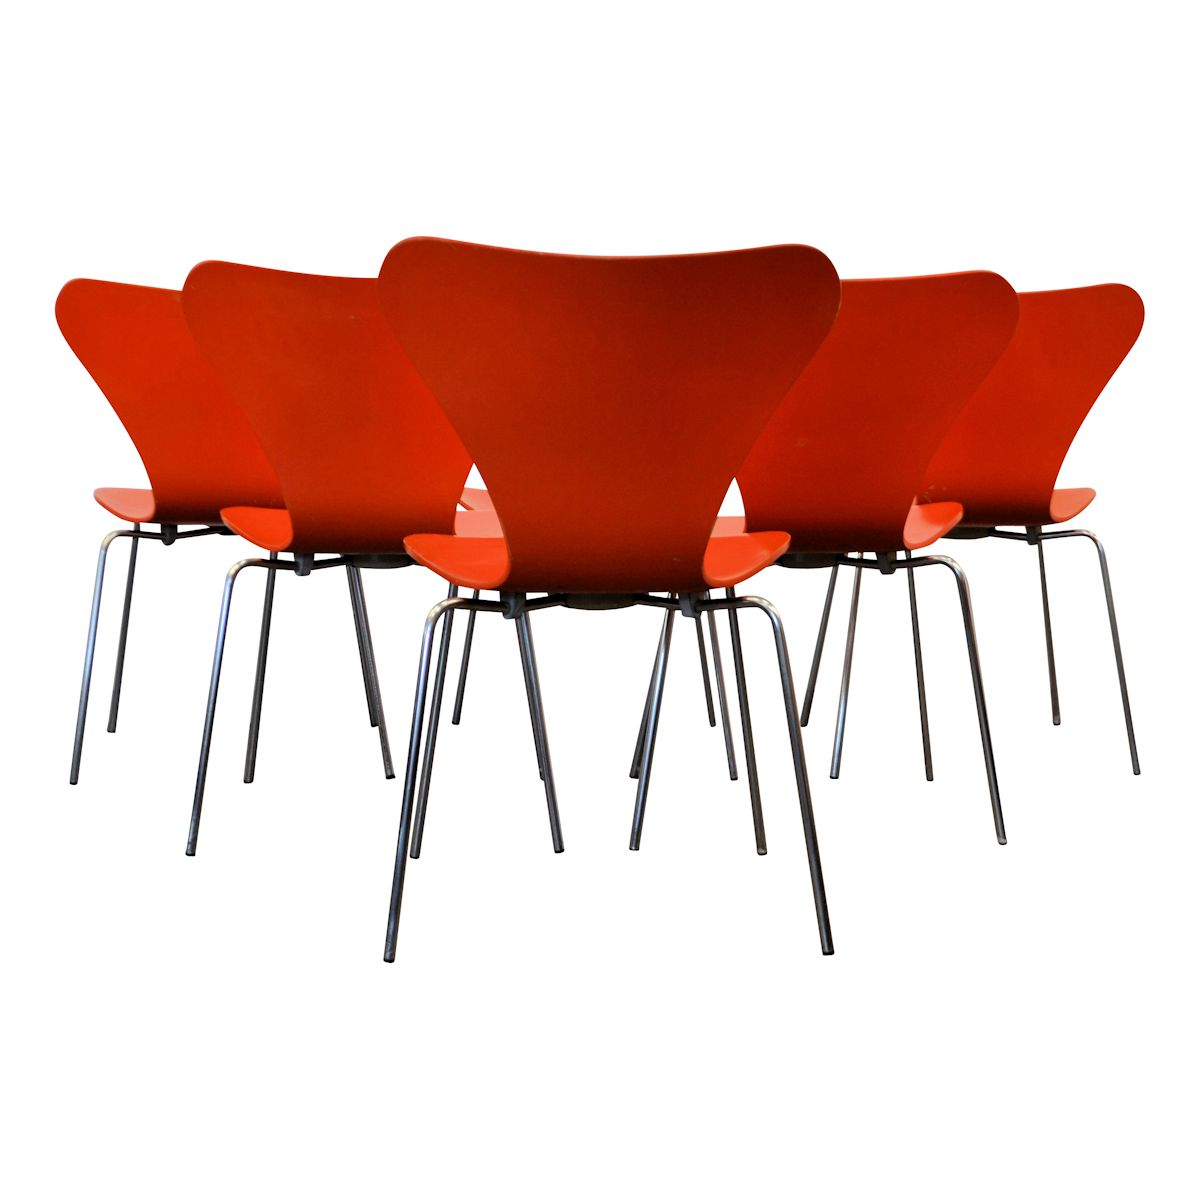 Model 3107 Butterfly Chairs by Arne Jacobsen - back